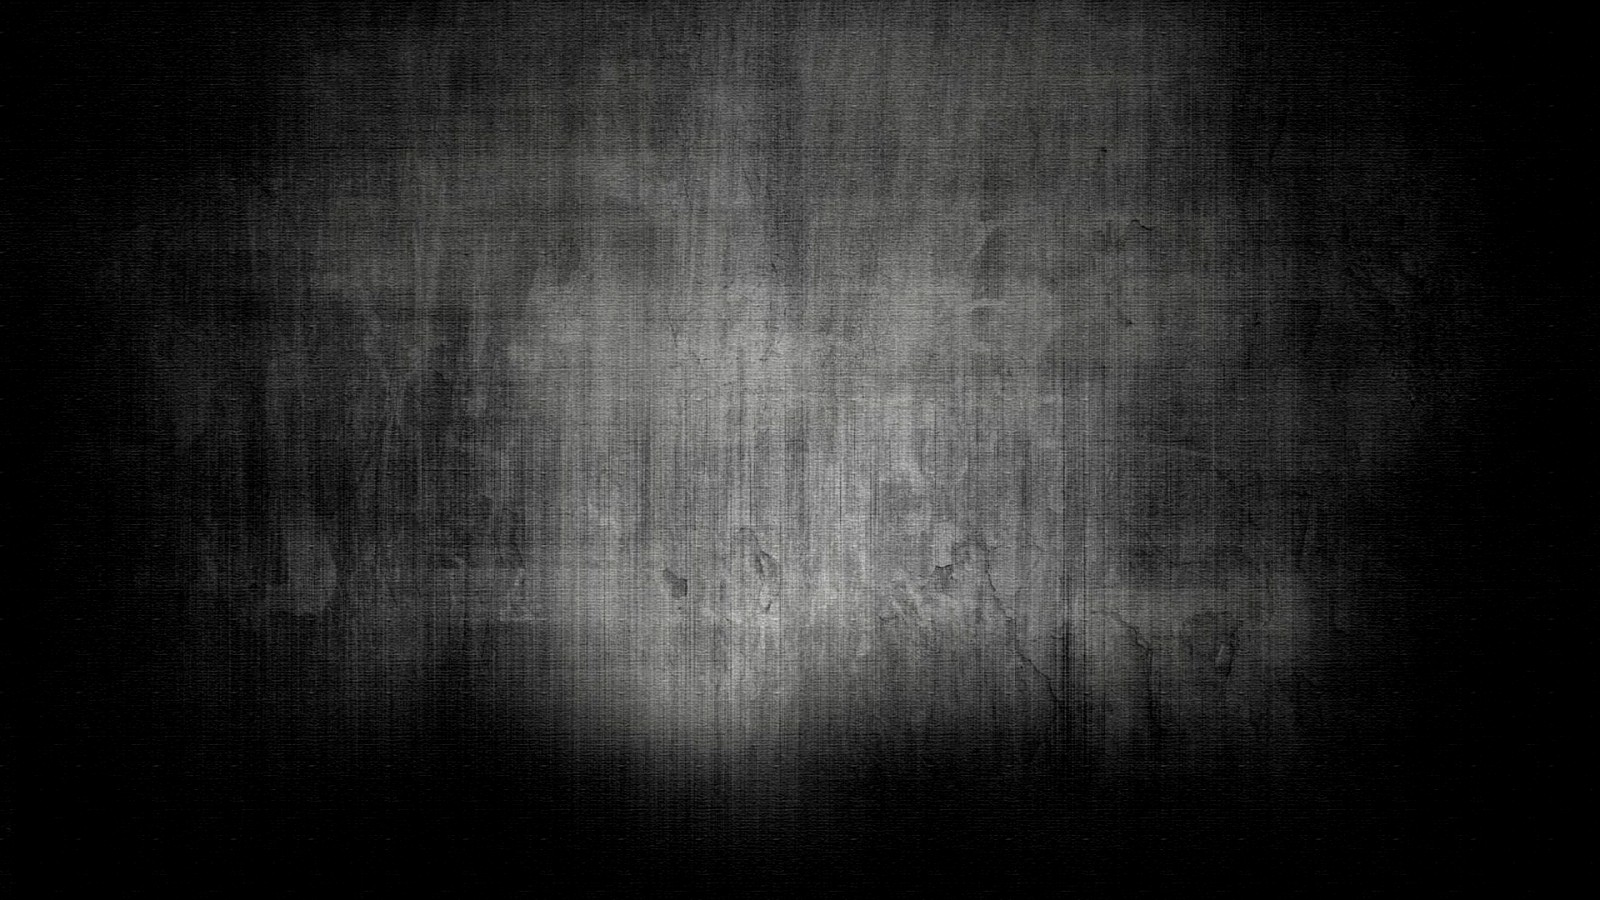 orgwp contentuploads201306Texture Background Dark Spot HDjpg 1600x900